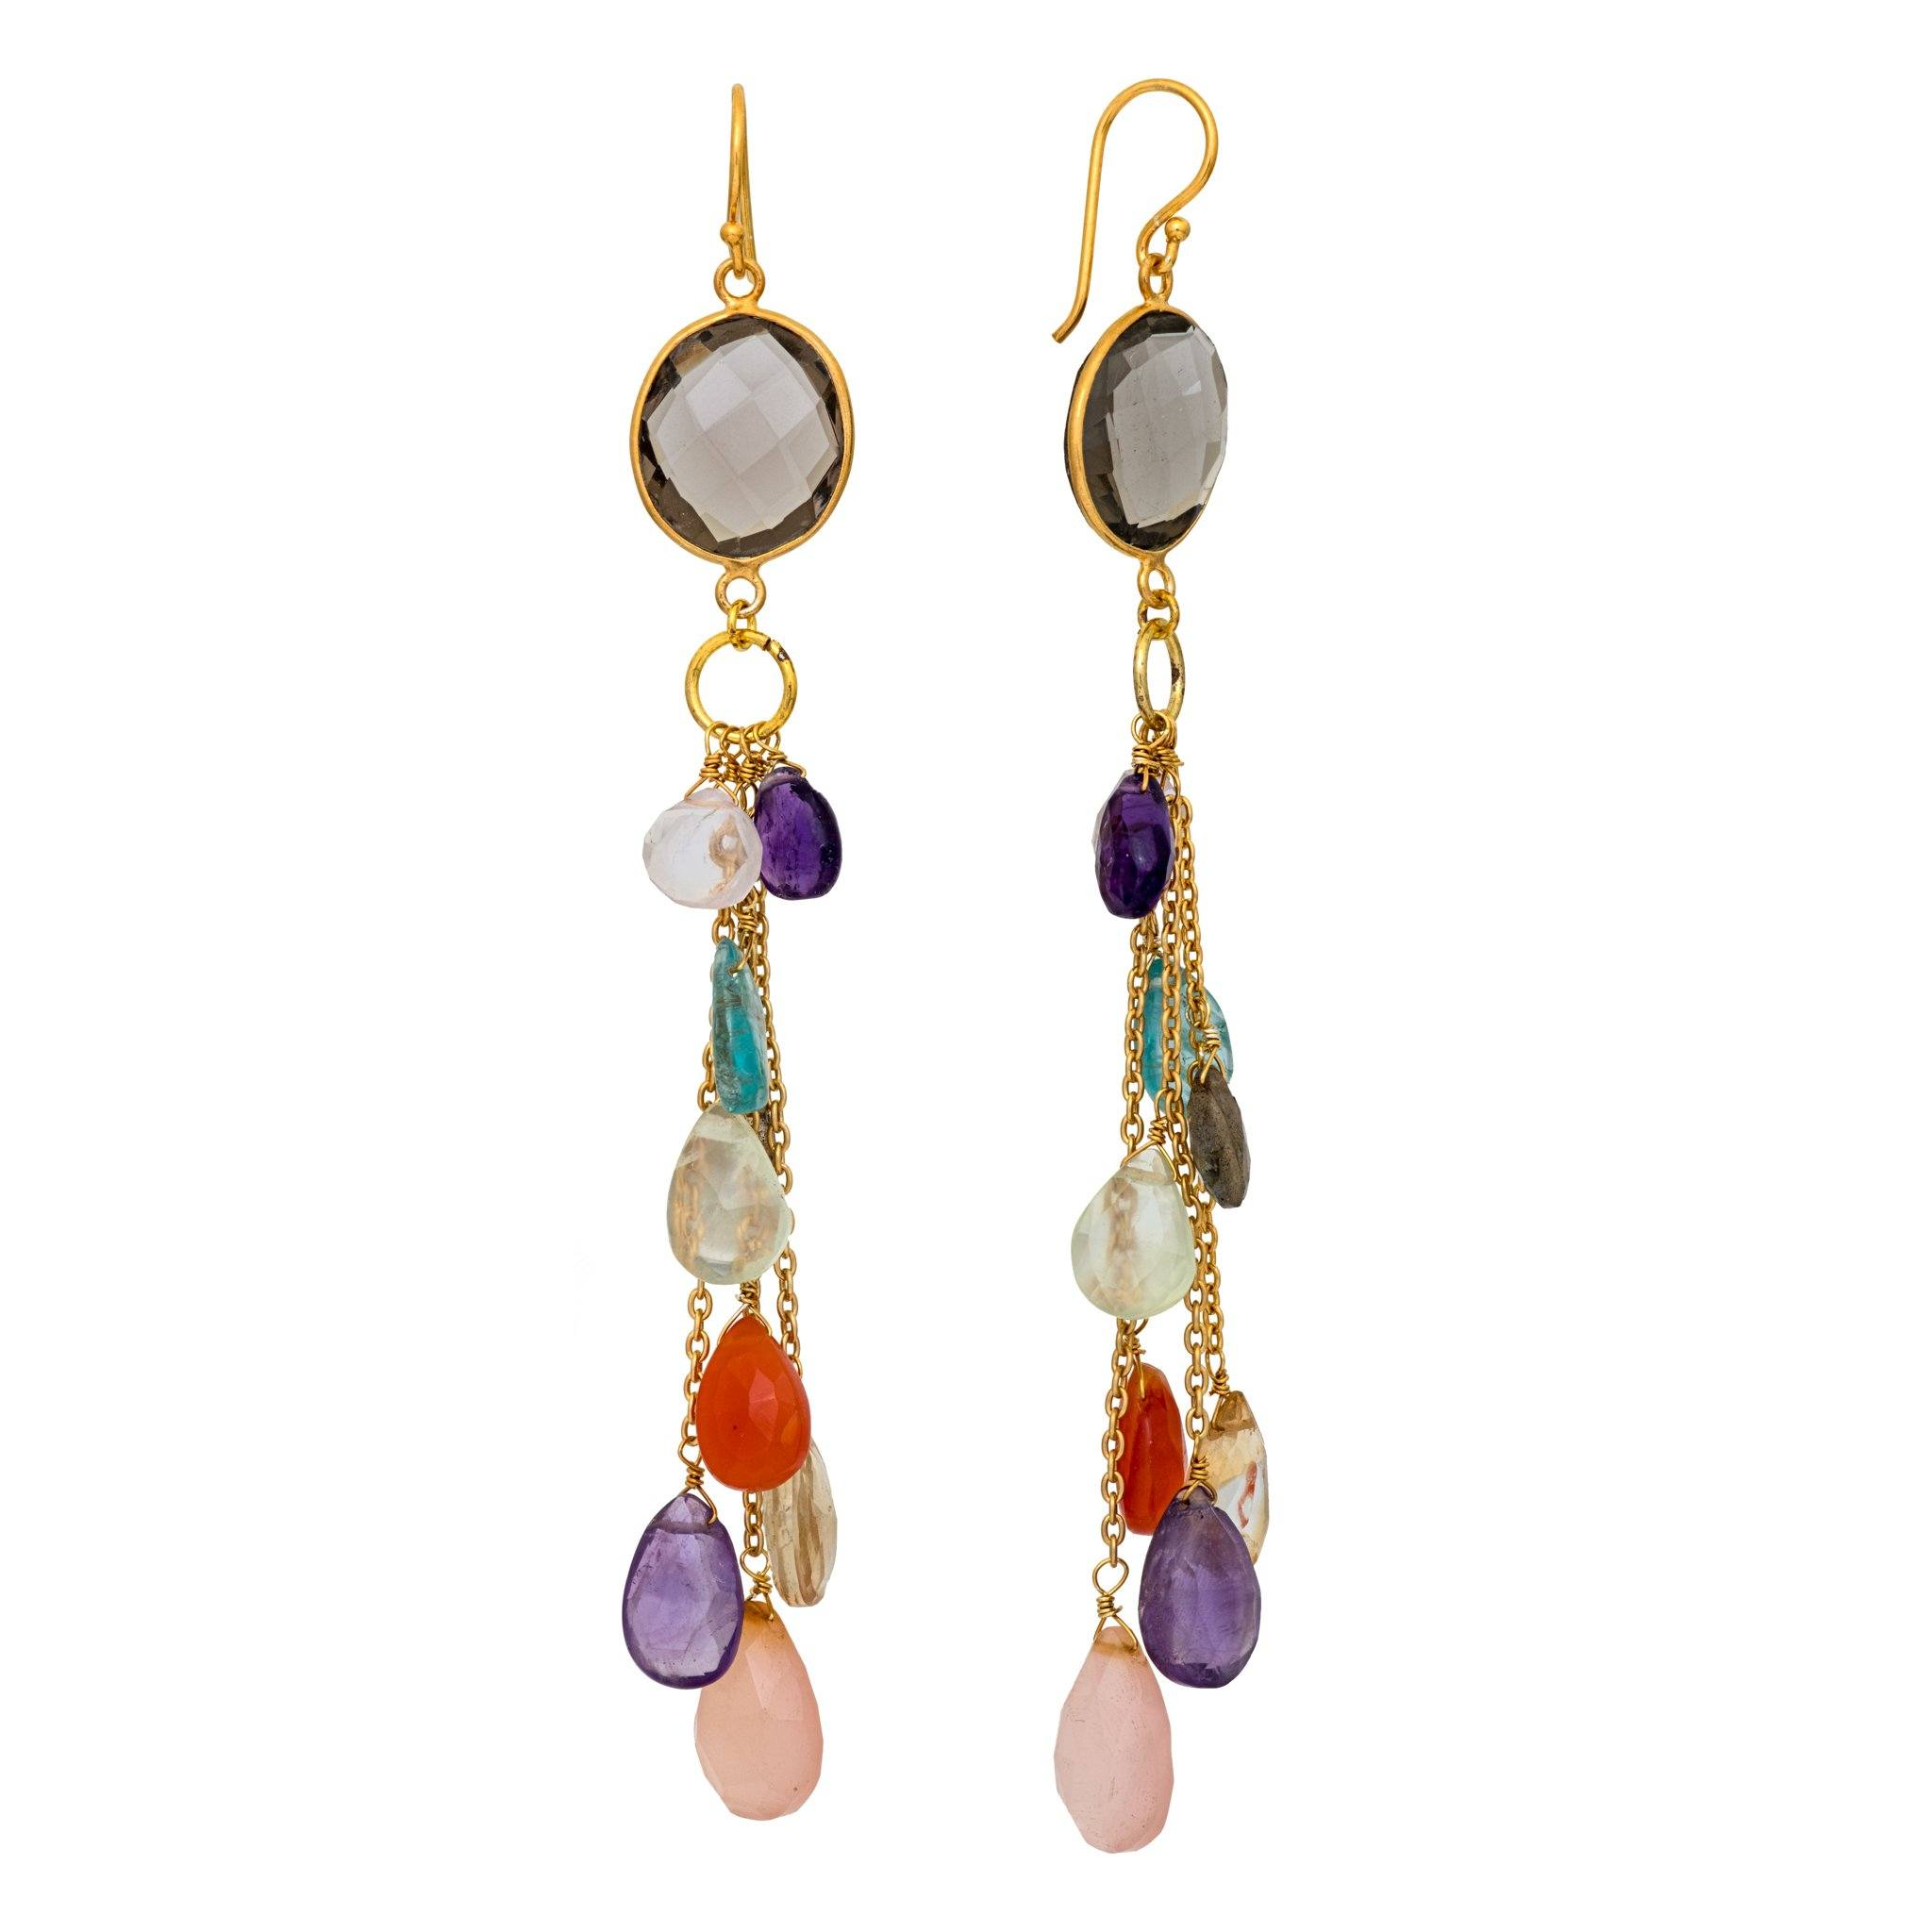 LUZ mix of quartz cluster long earrings